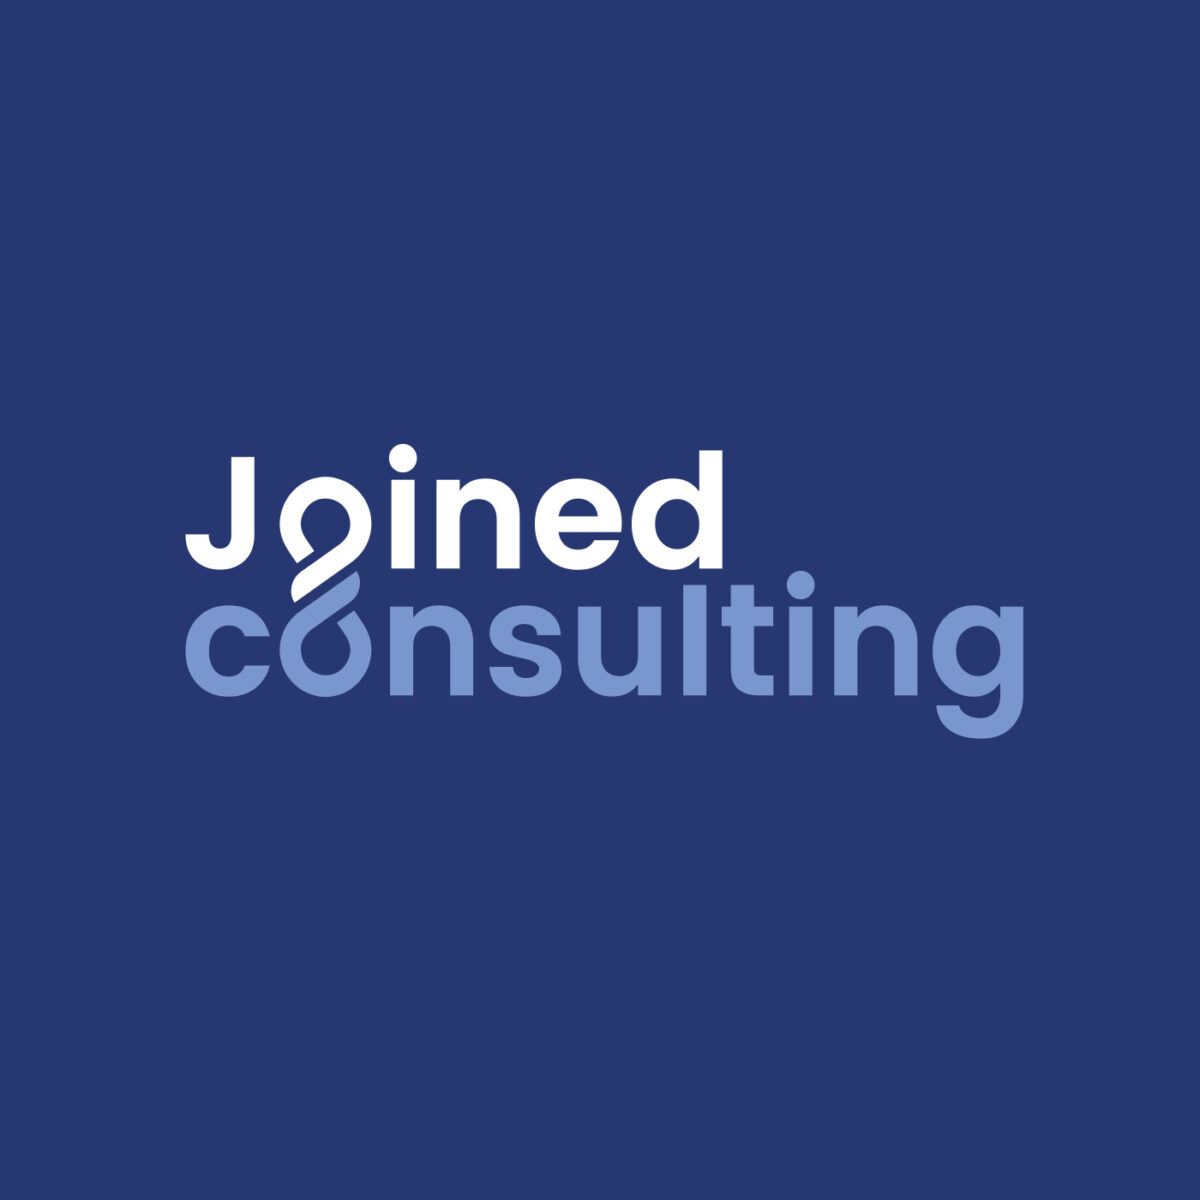 Logo Joined Consulting